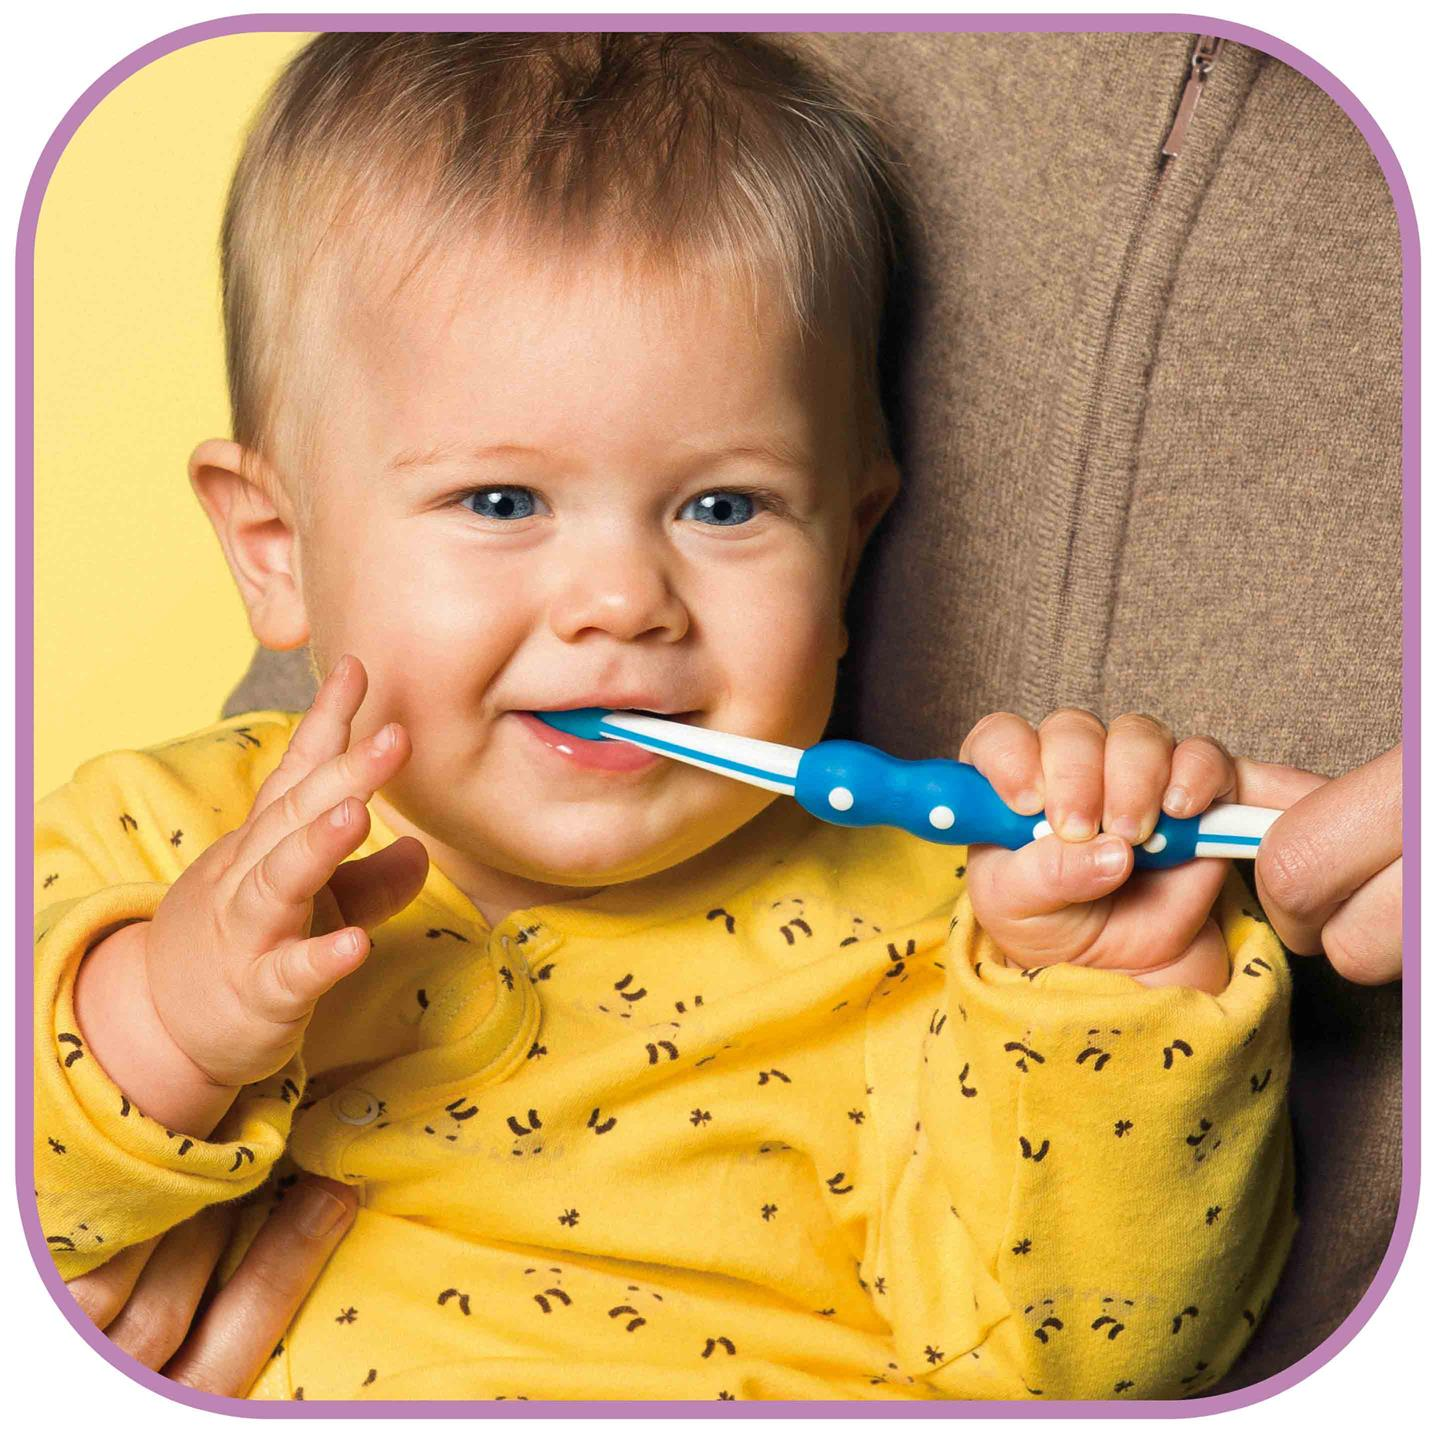 MAM Baby Massaging Toothbrush (D252)